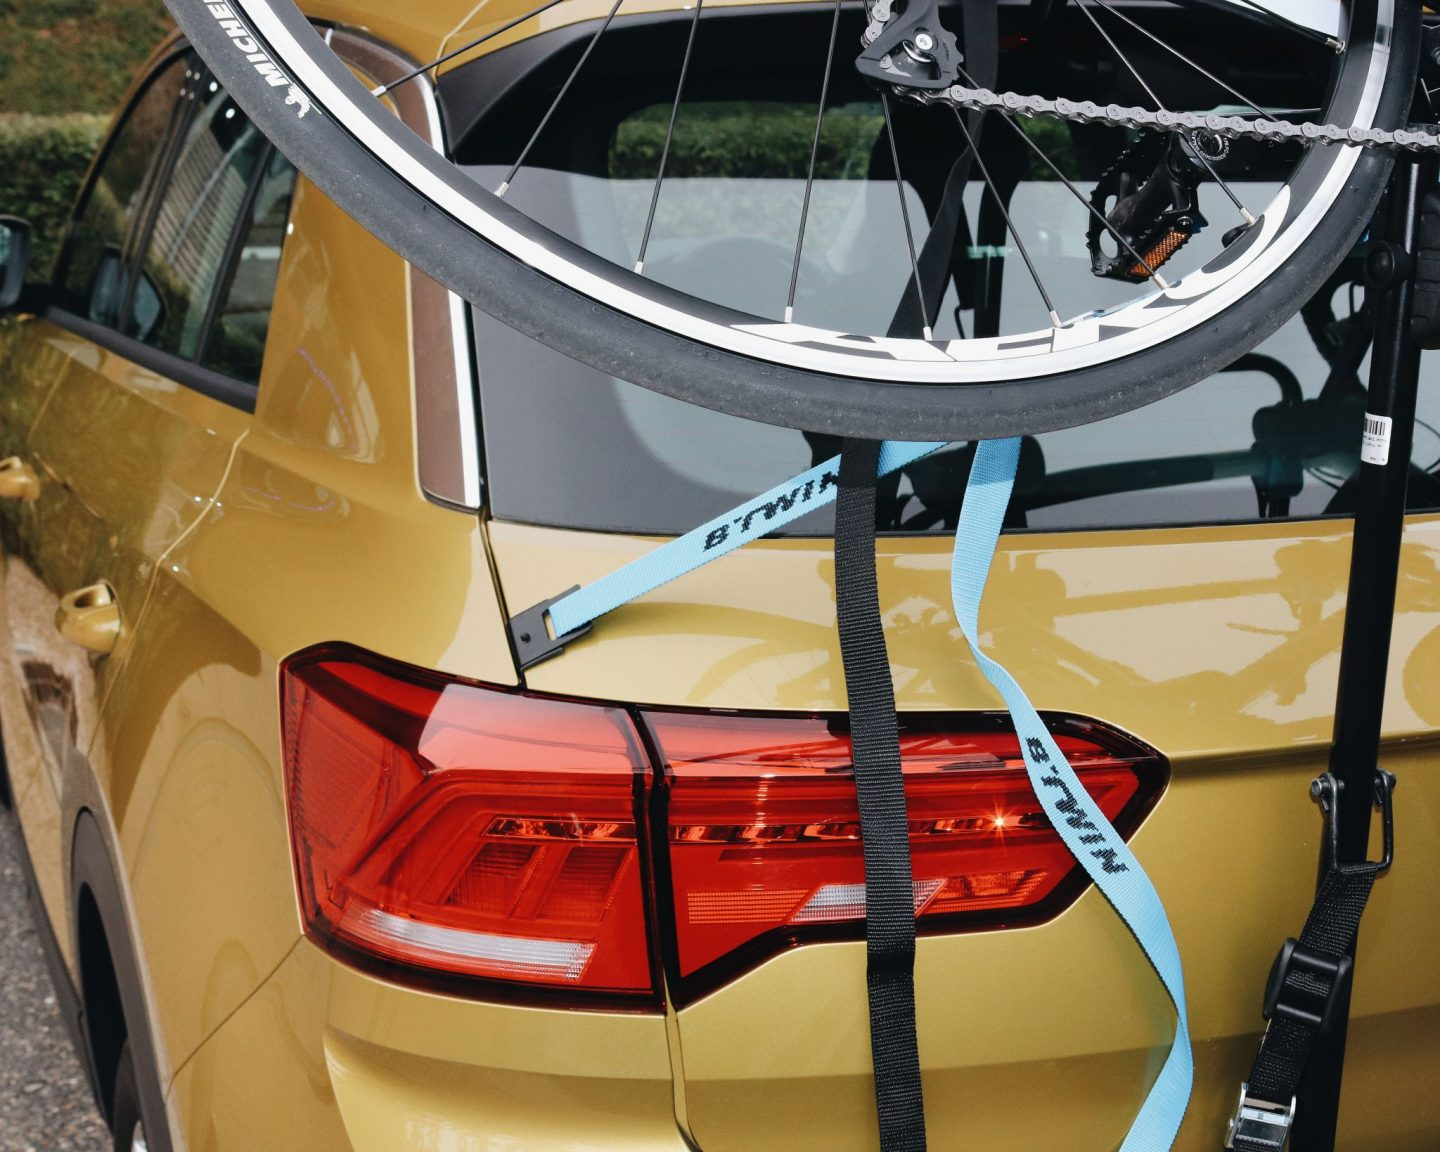 B'TWIN 320 rear bike rack on car